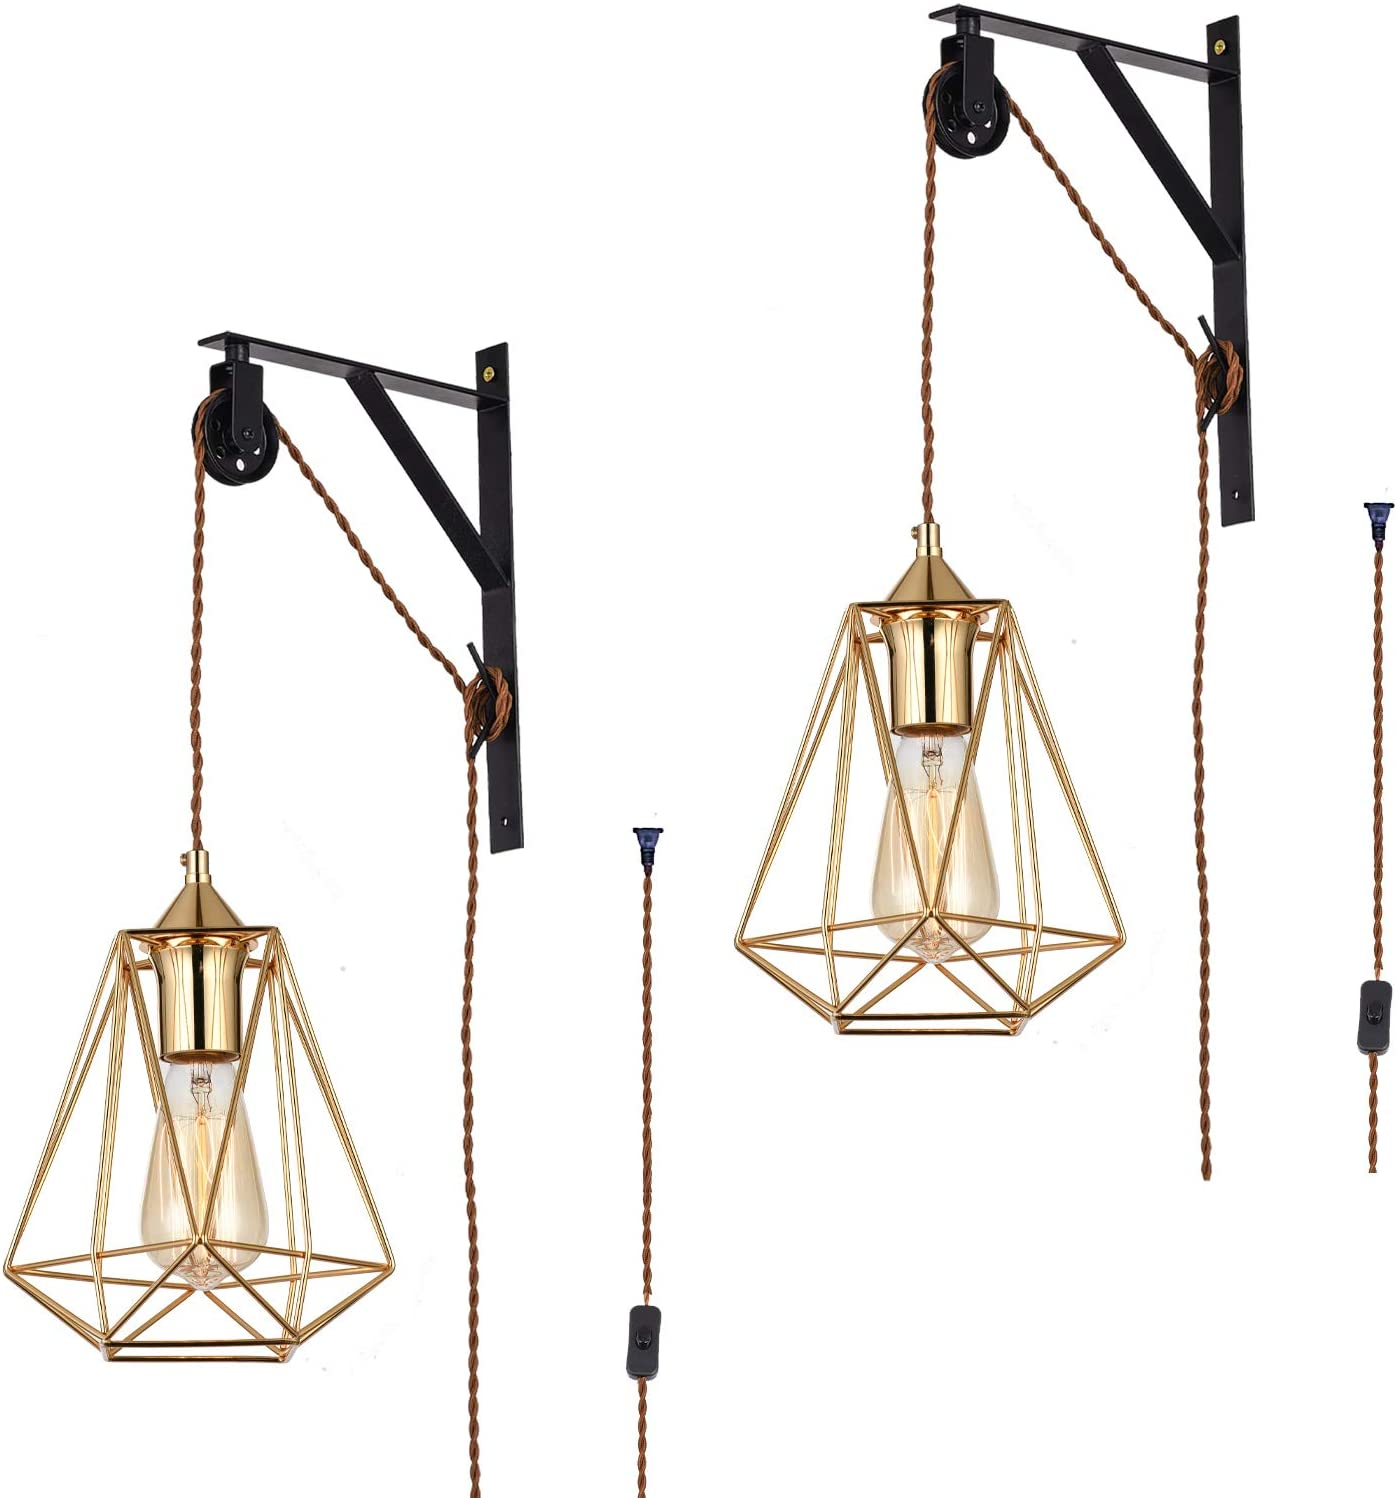 Set of 2 Vintage Design Industrial Wheel Farmhouse Cage Wall Mount Pulley Wall Pendant Lamp with 15-Foot Brown Plug and Switch Wall Lamp (Gold)